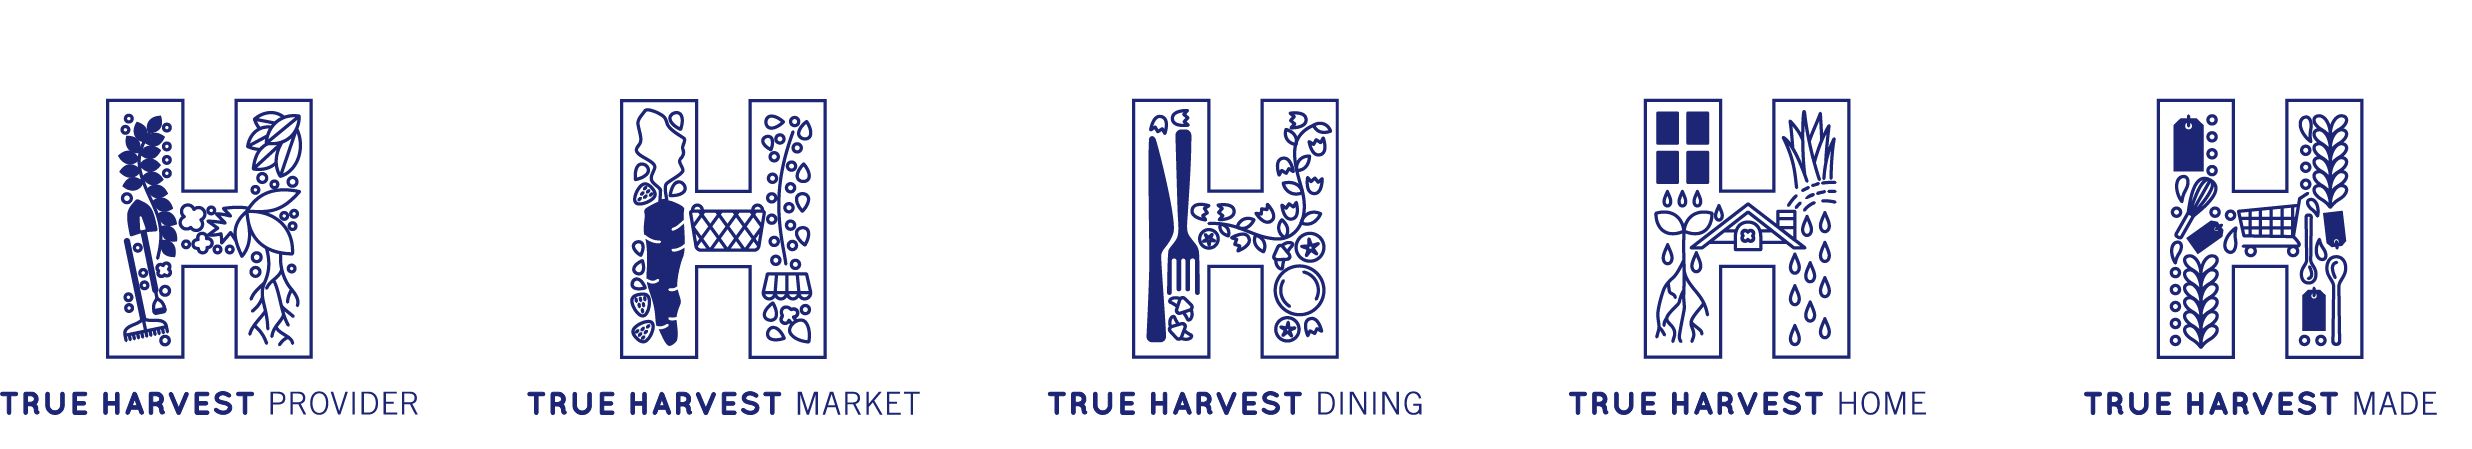 true_harvest_logos.png